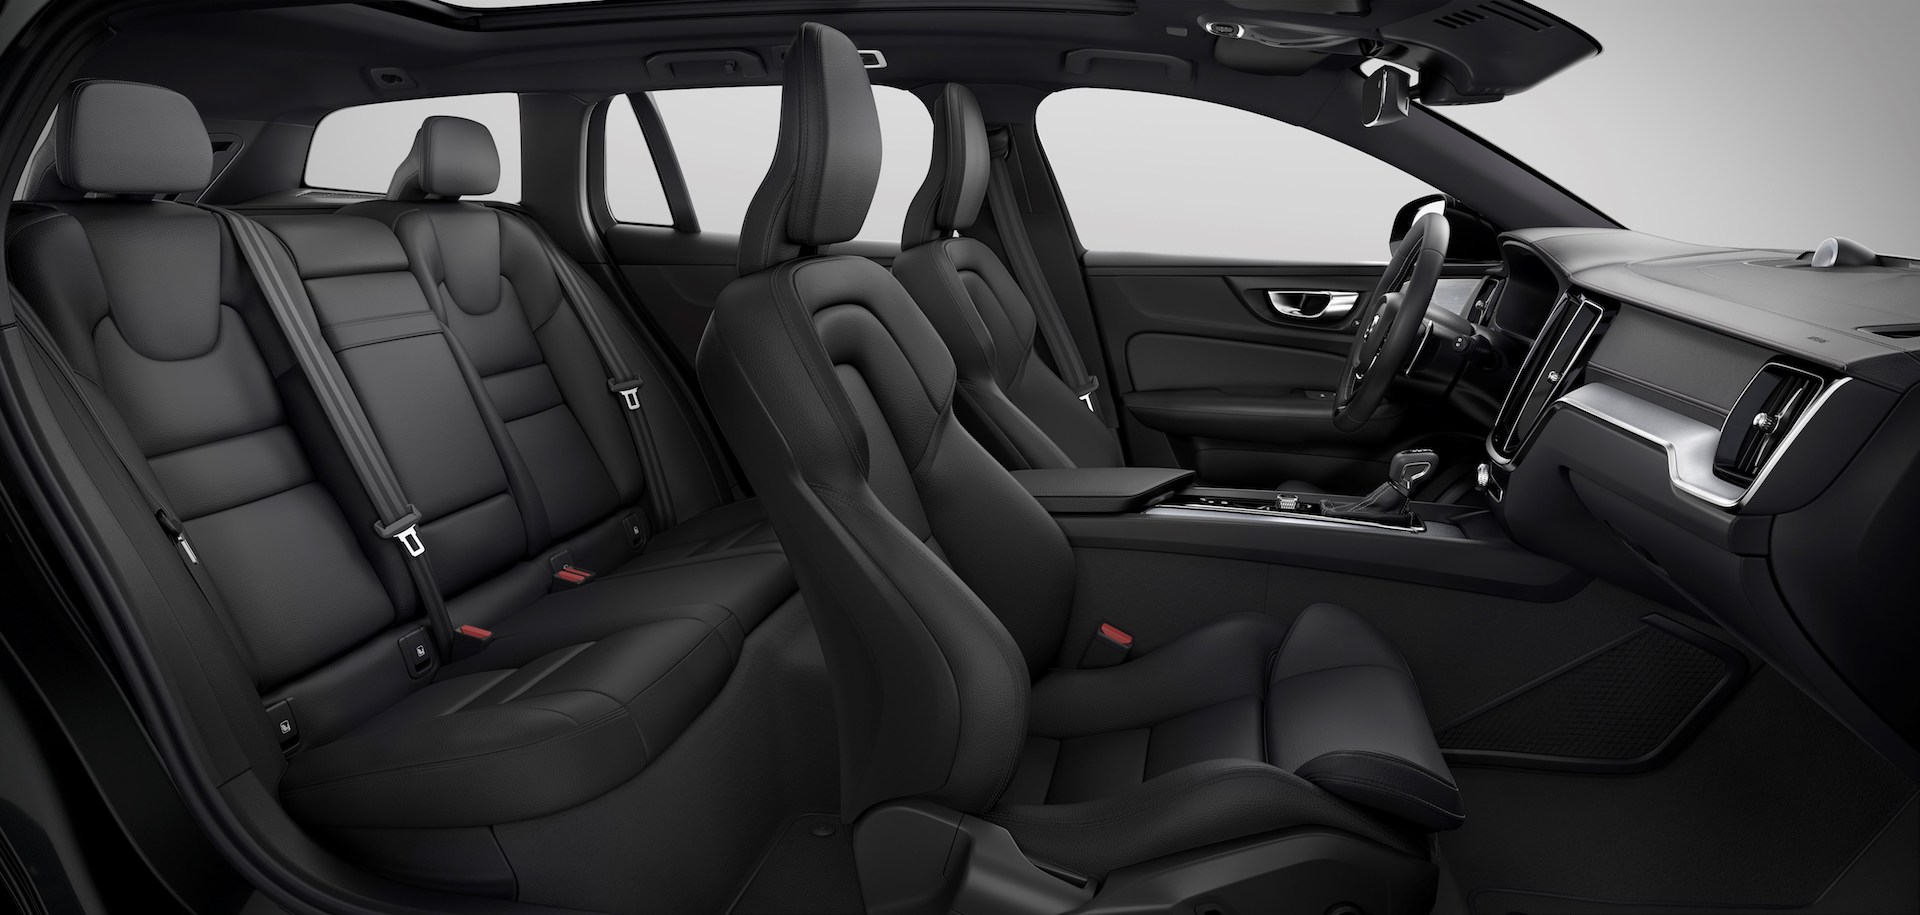 New Volvo V60 R-design interior